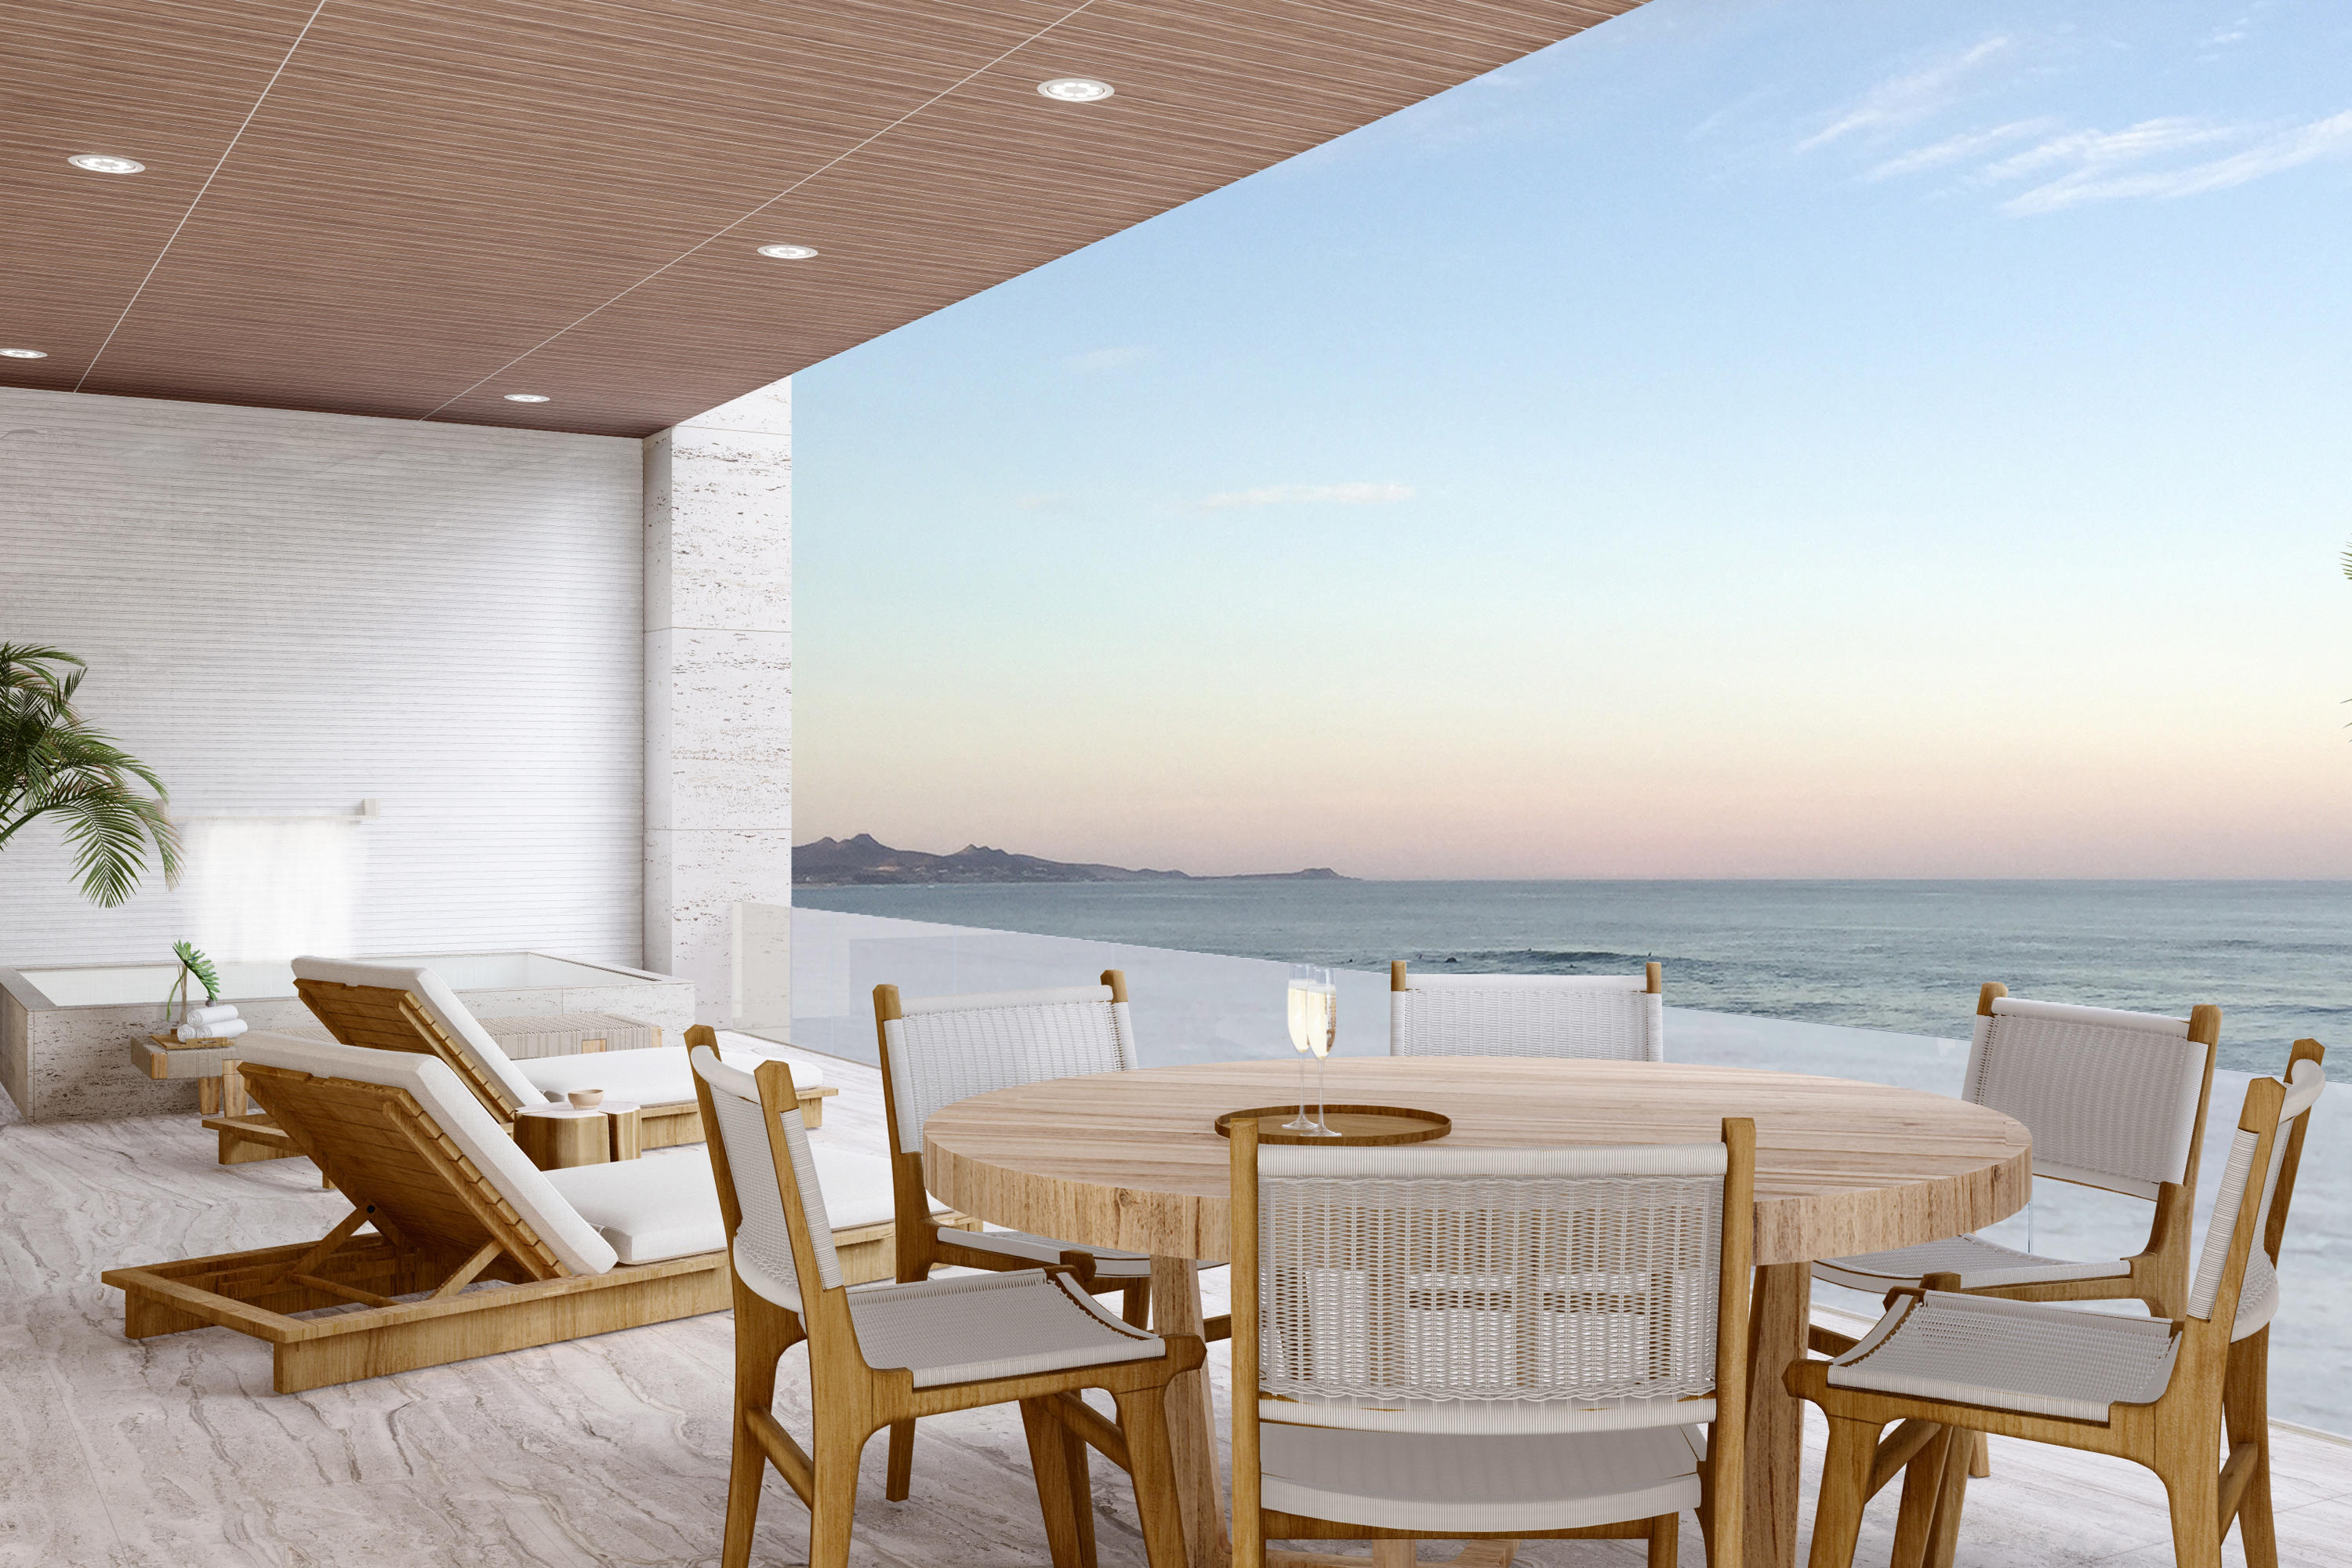 The Ocean Residences are the first oceanfront ownership opportunity in our community, bringing Querencia closer than ever to the Sea of Cortez. With spacious terraces, open floorplans and floor-to-ceiling glass doors, each airy residence is artfully planned to invite the seascape in. Let our team bring your vision to life with custom features or select an Ocean Residences signature design.